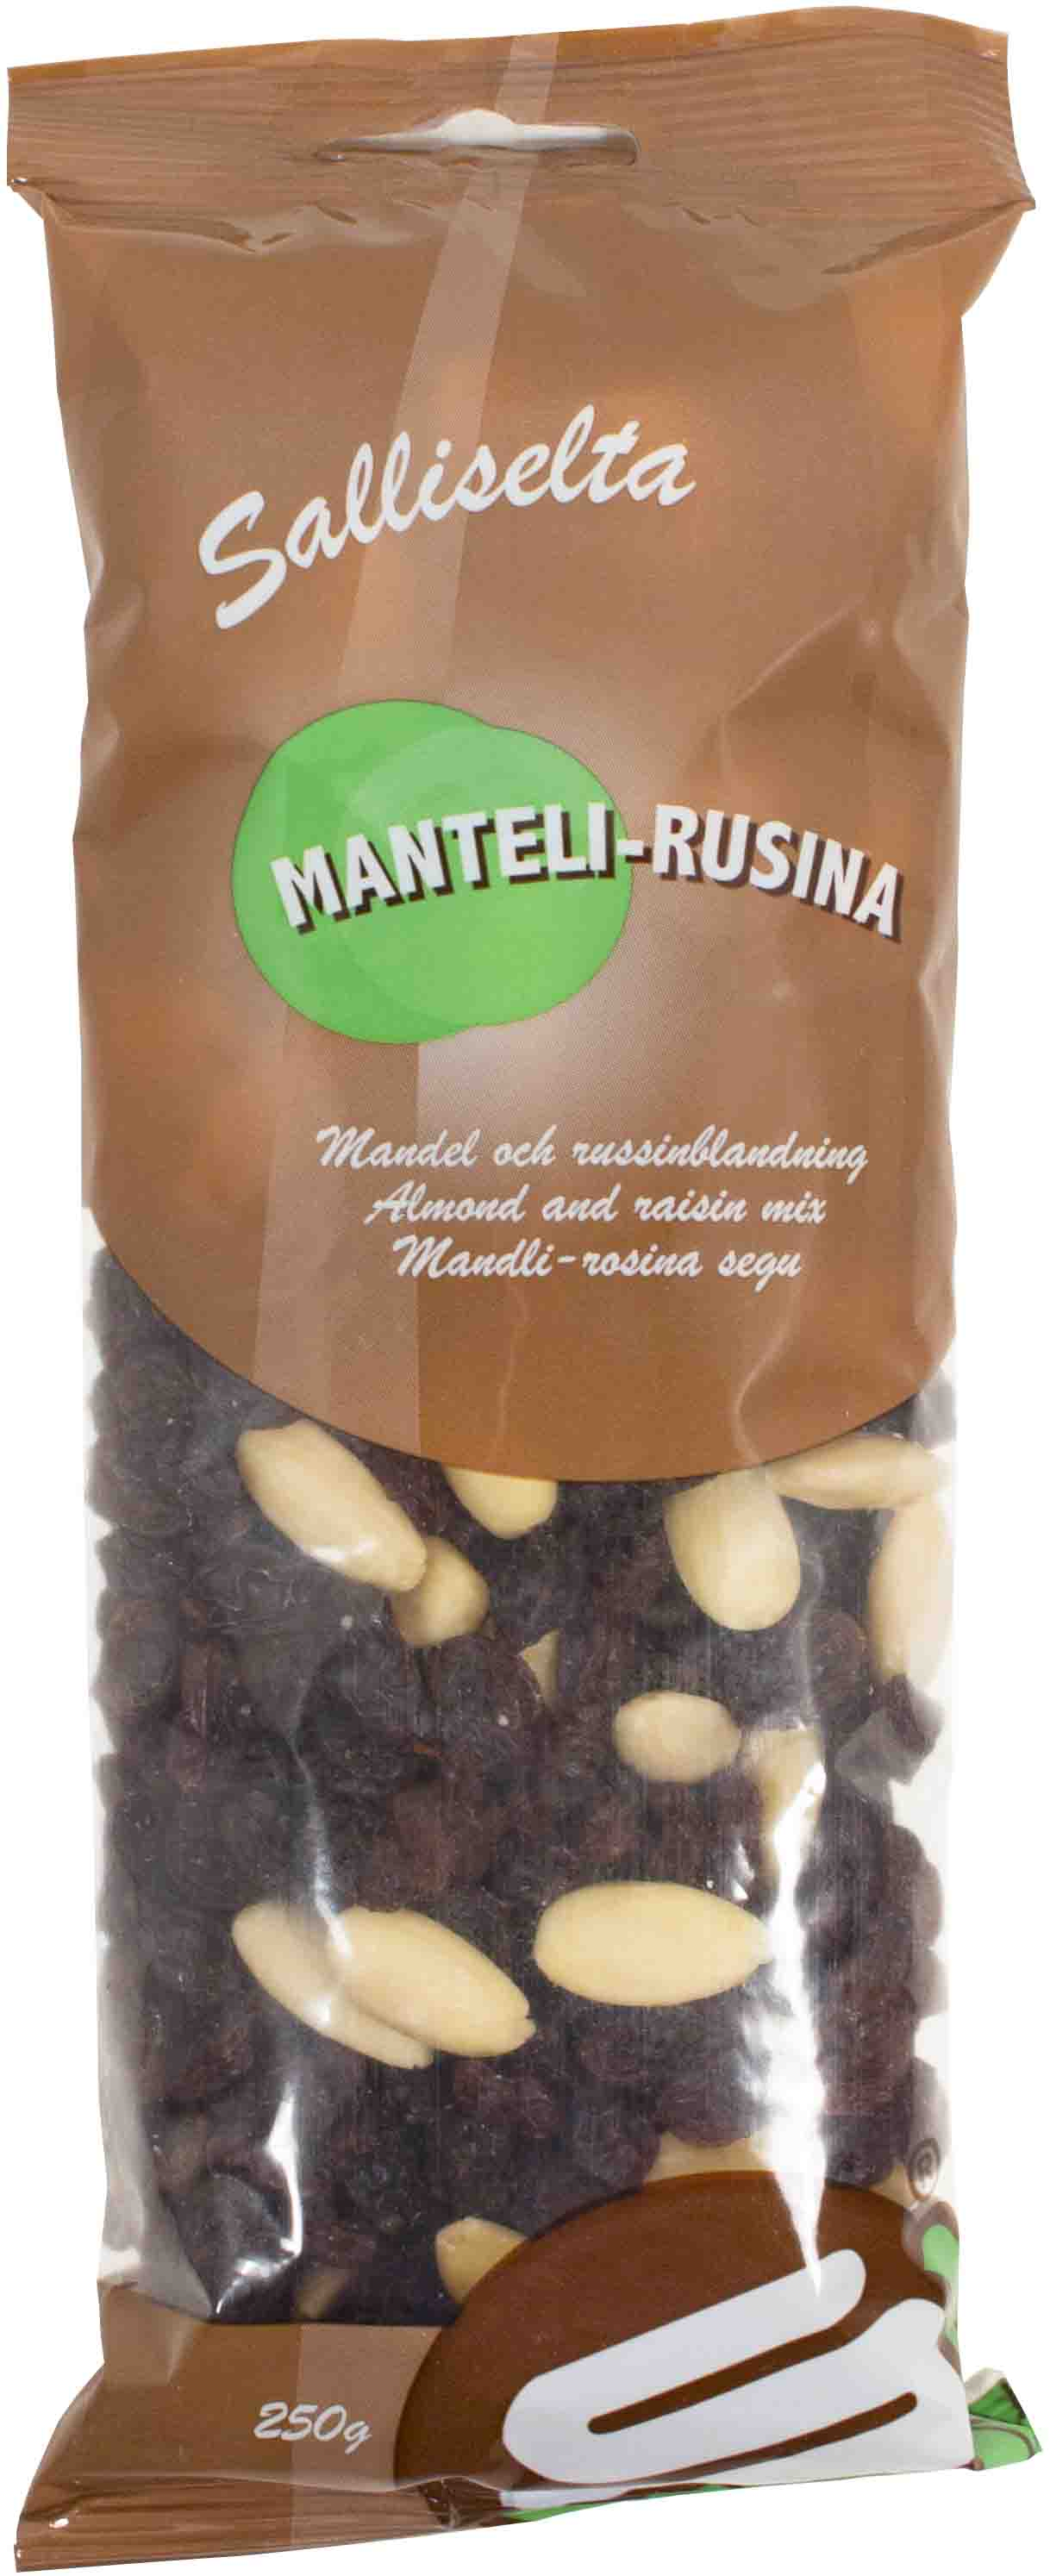 Almond and raisin mix 250g